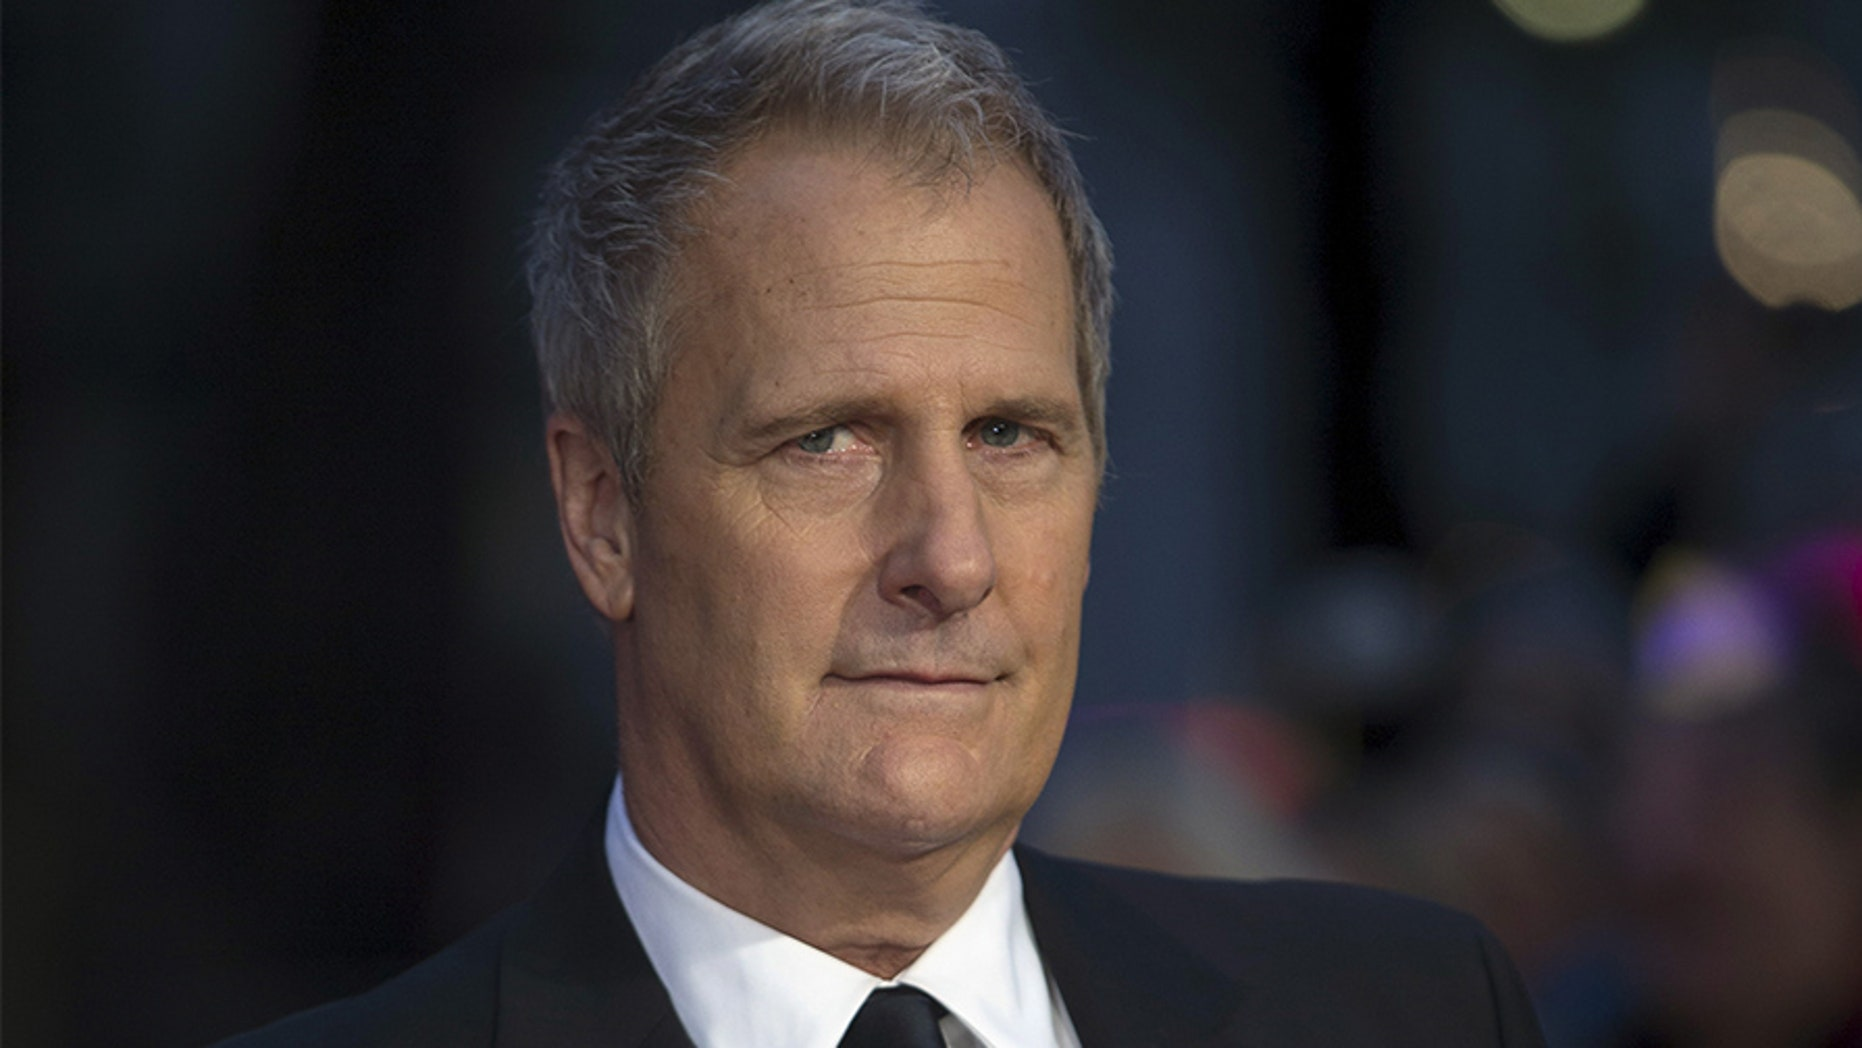 Jeff Daniels left Hollywood in 1986 and moved to Chelsea, Mich.